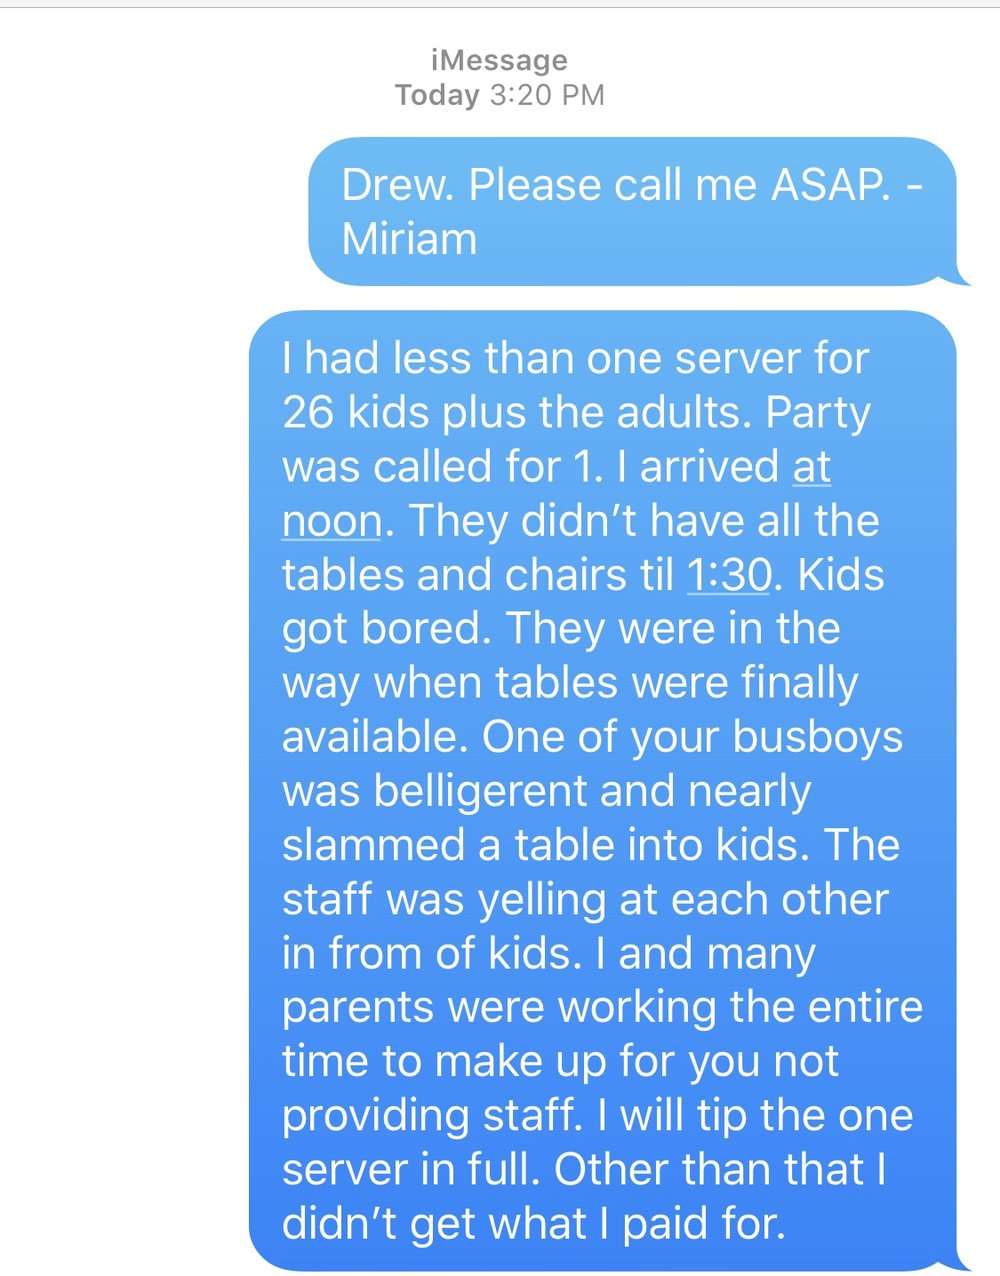 Here is the text that I sent to the manager when the party ended.